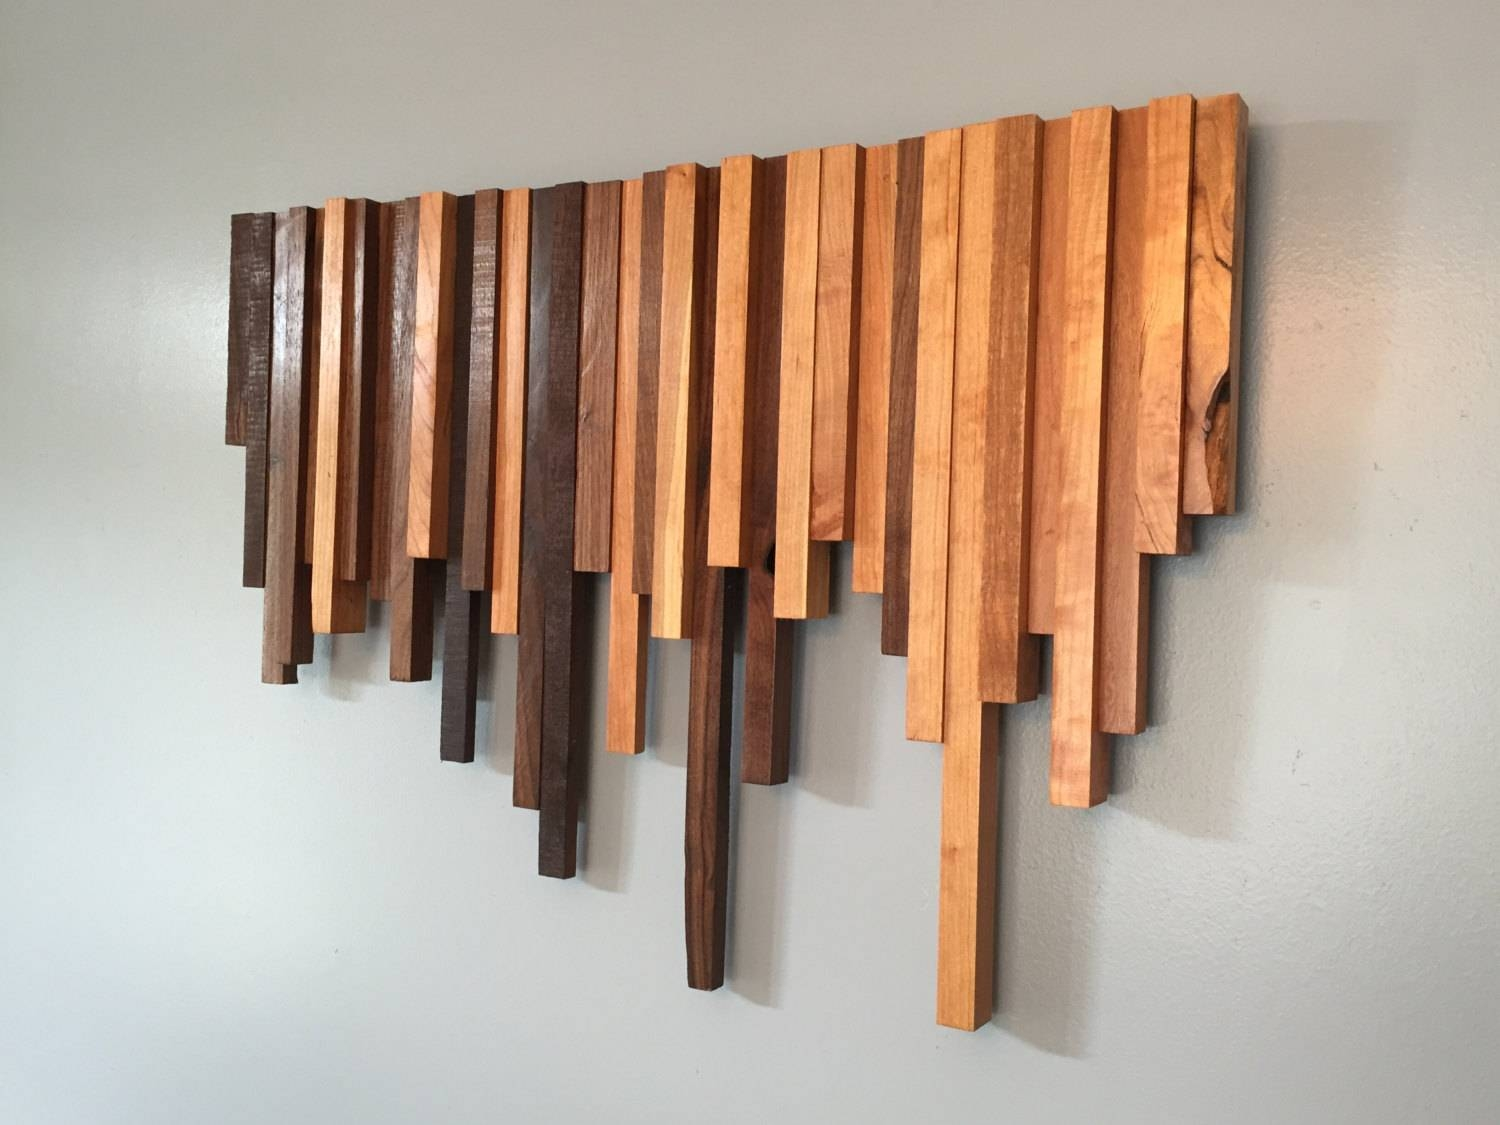 Wood Wall Art Cherry And Walnut • Recous Inside Most Recent Wall Art On Wood (View 7 of 20)